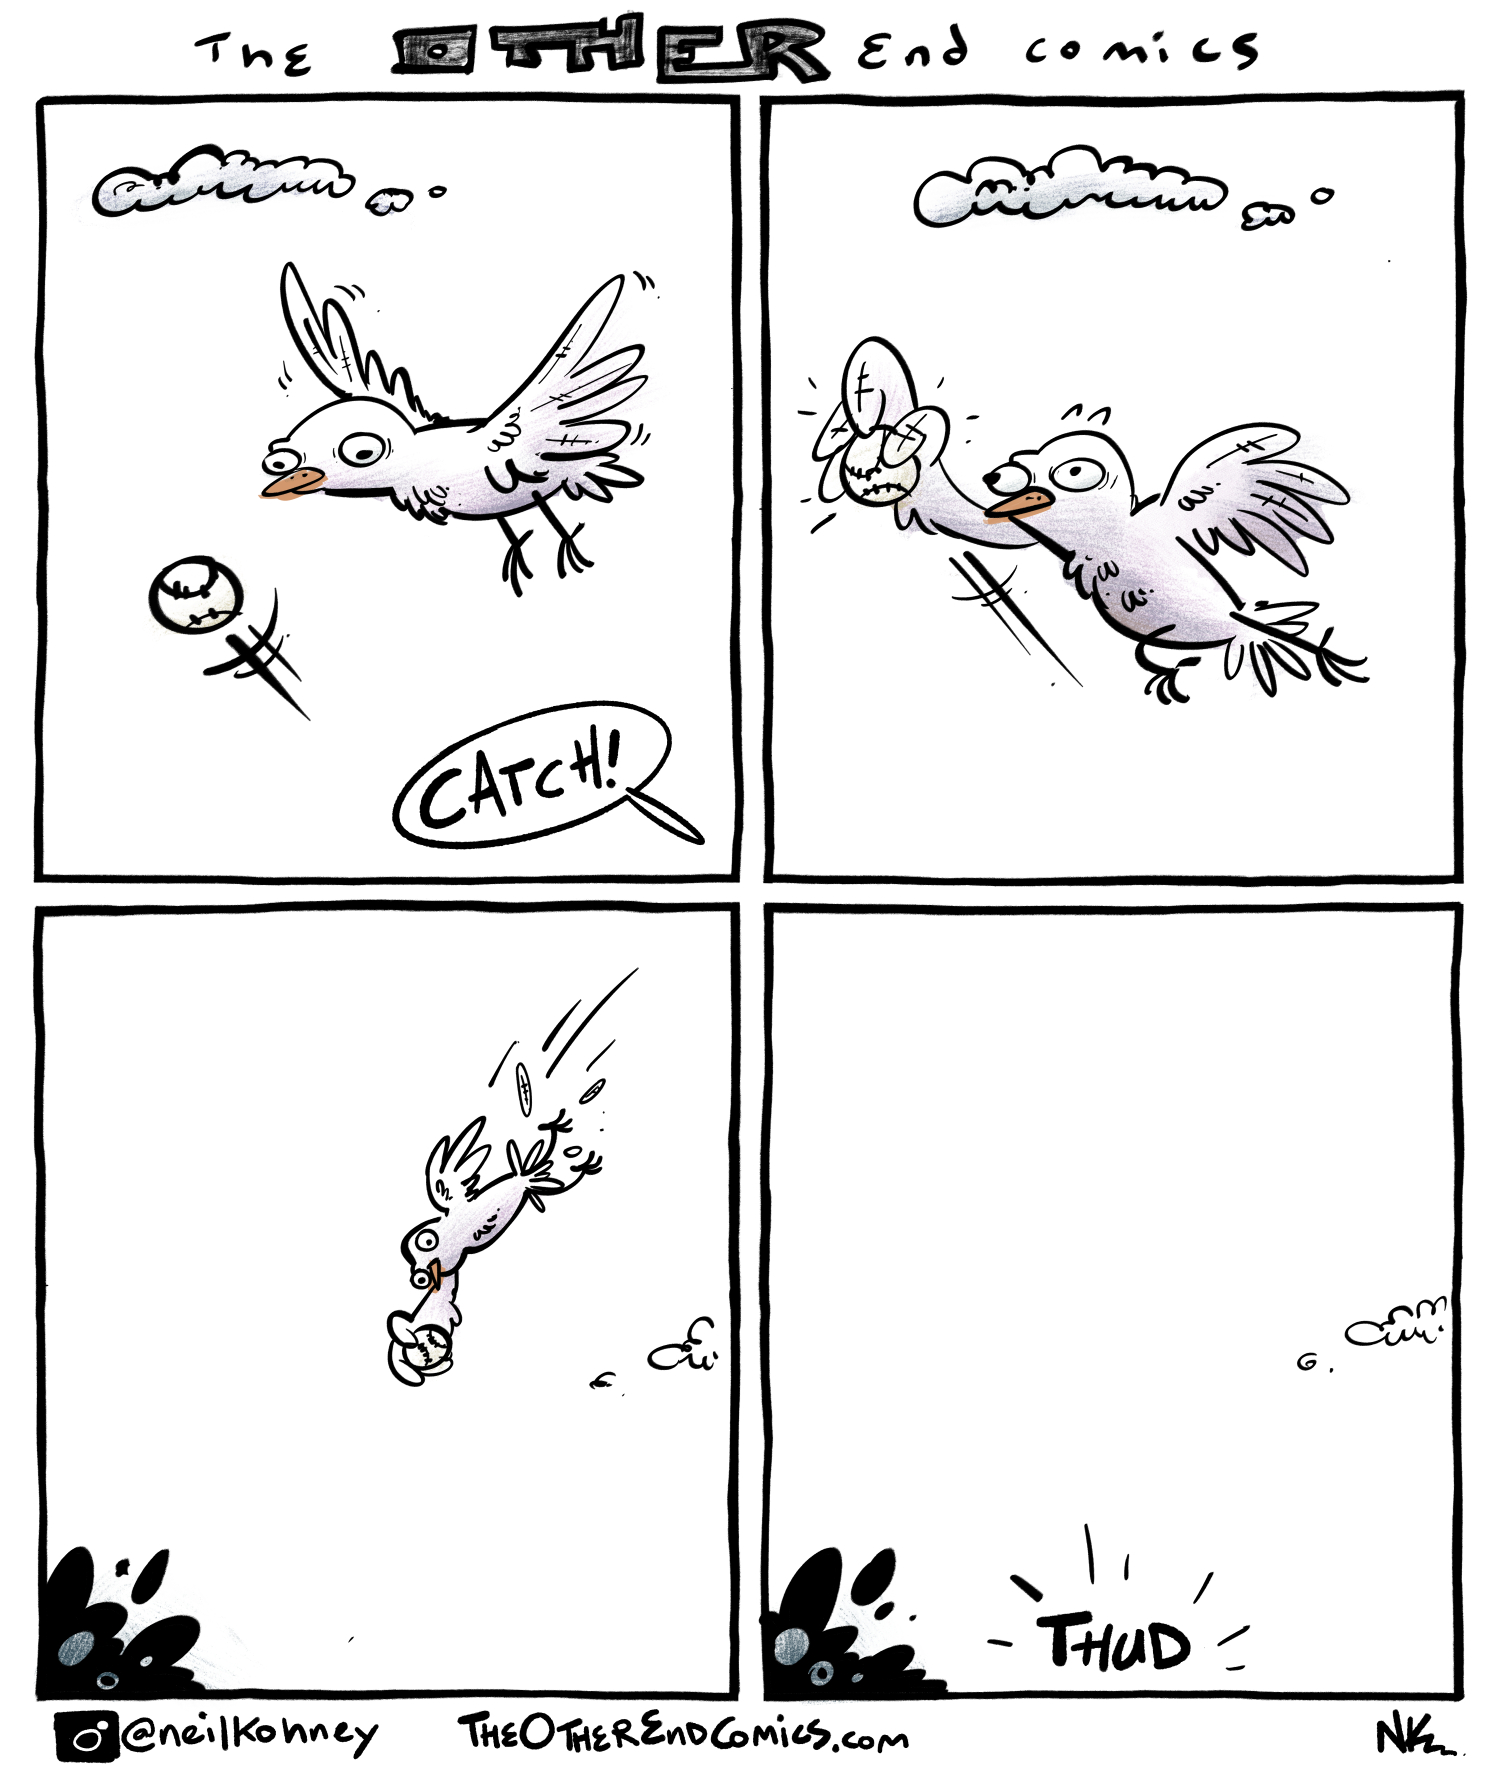 This, and this alone, is why you don't see birds taking part in major sporting events